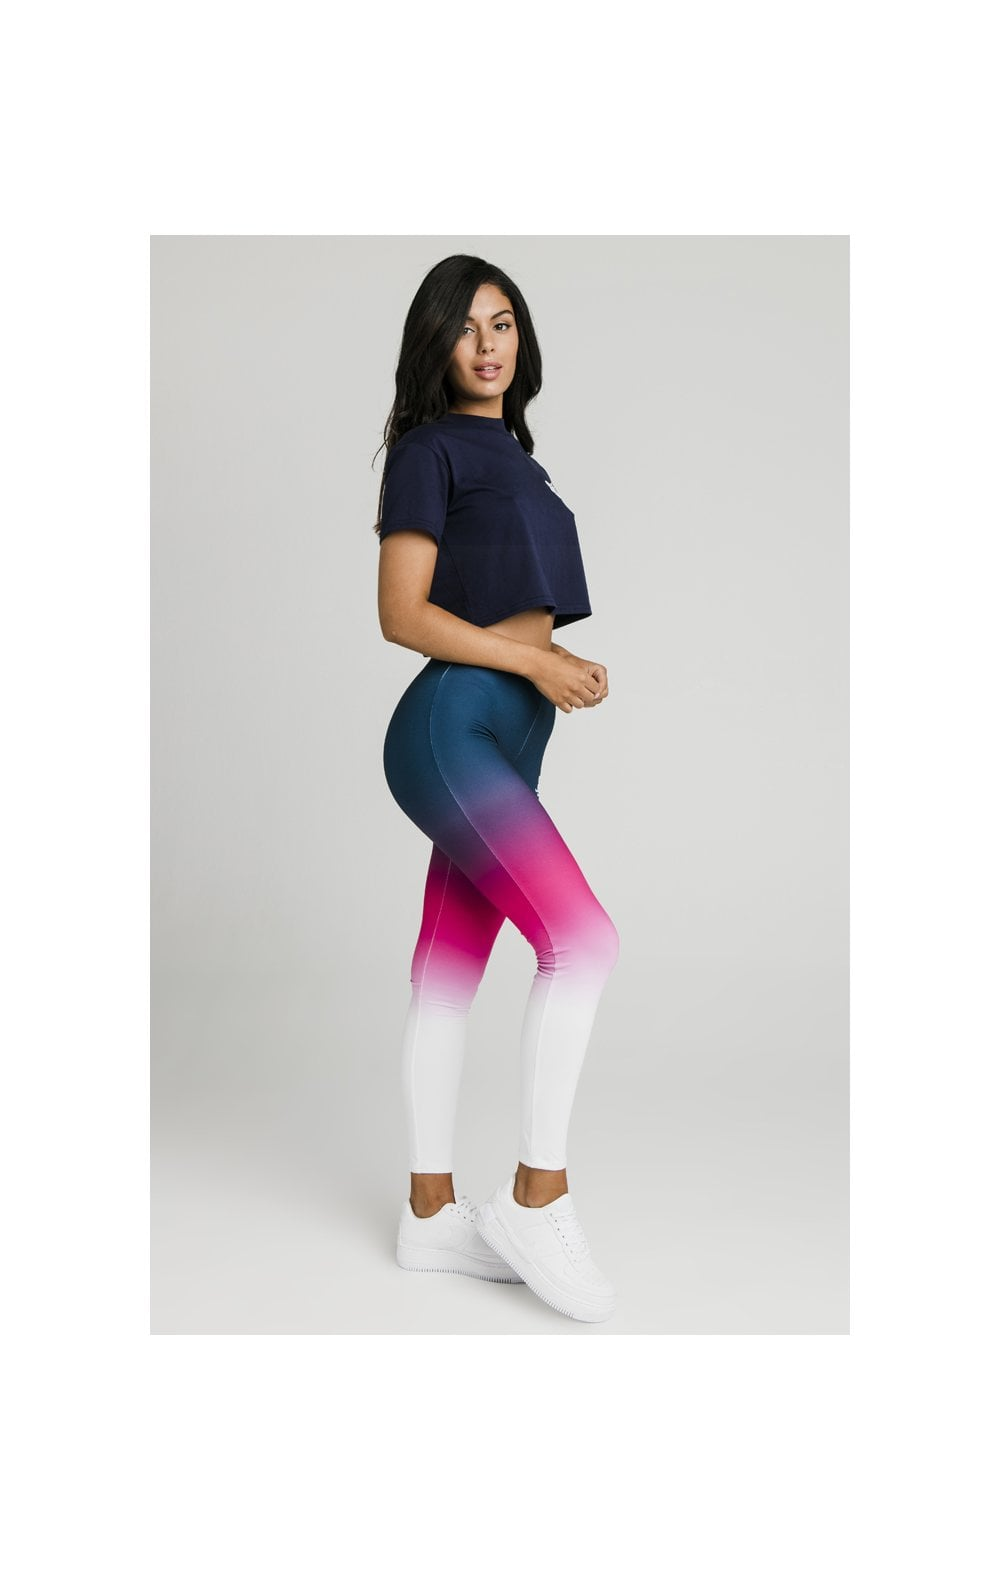 Load image into Gallery viewer, SikSilk Fade Tape Leggings - Navy, Pink & White (4)